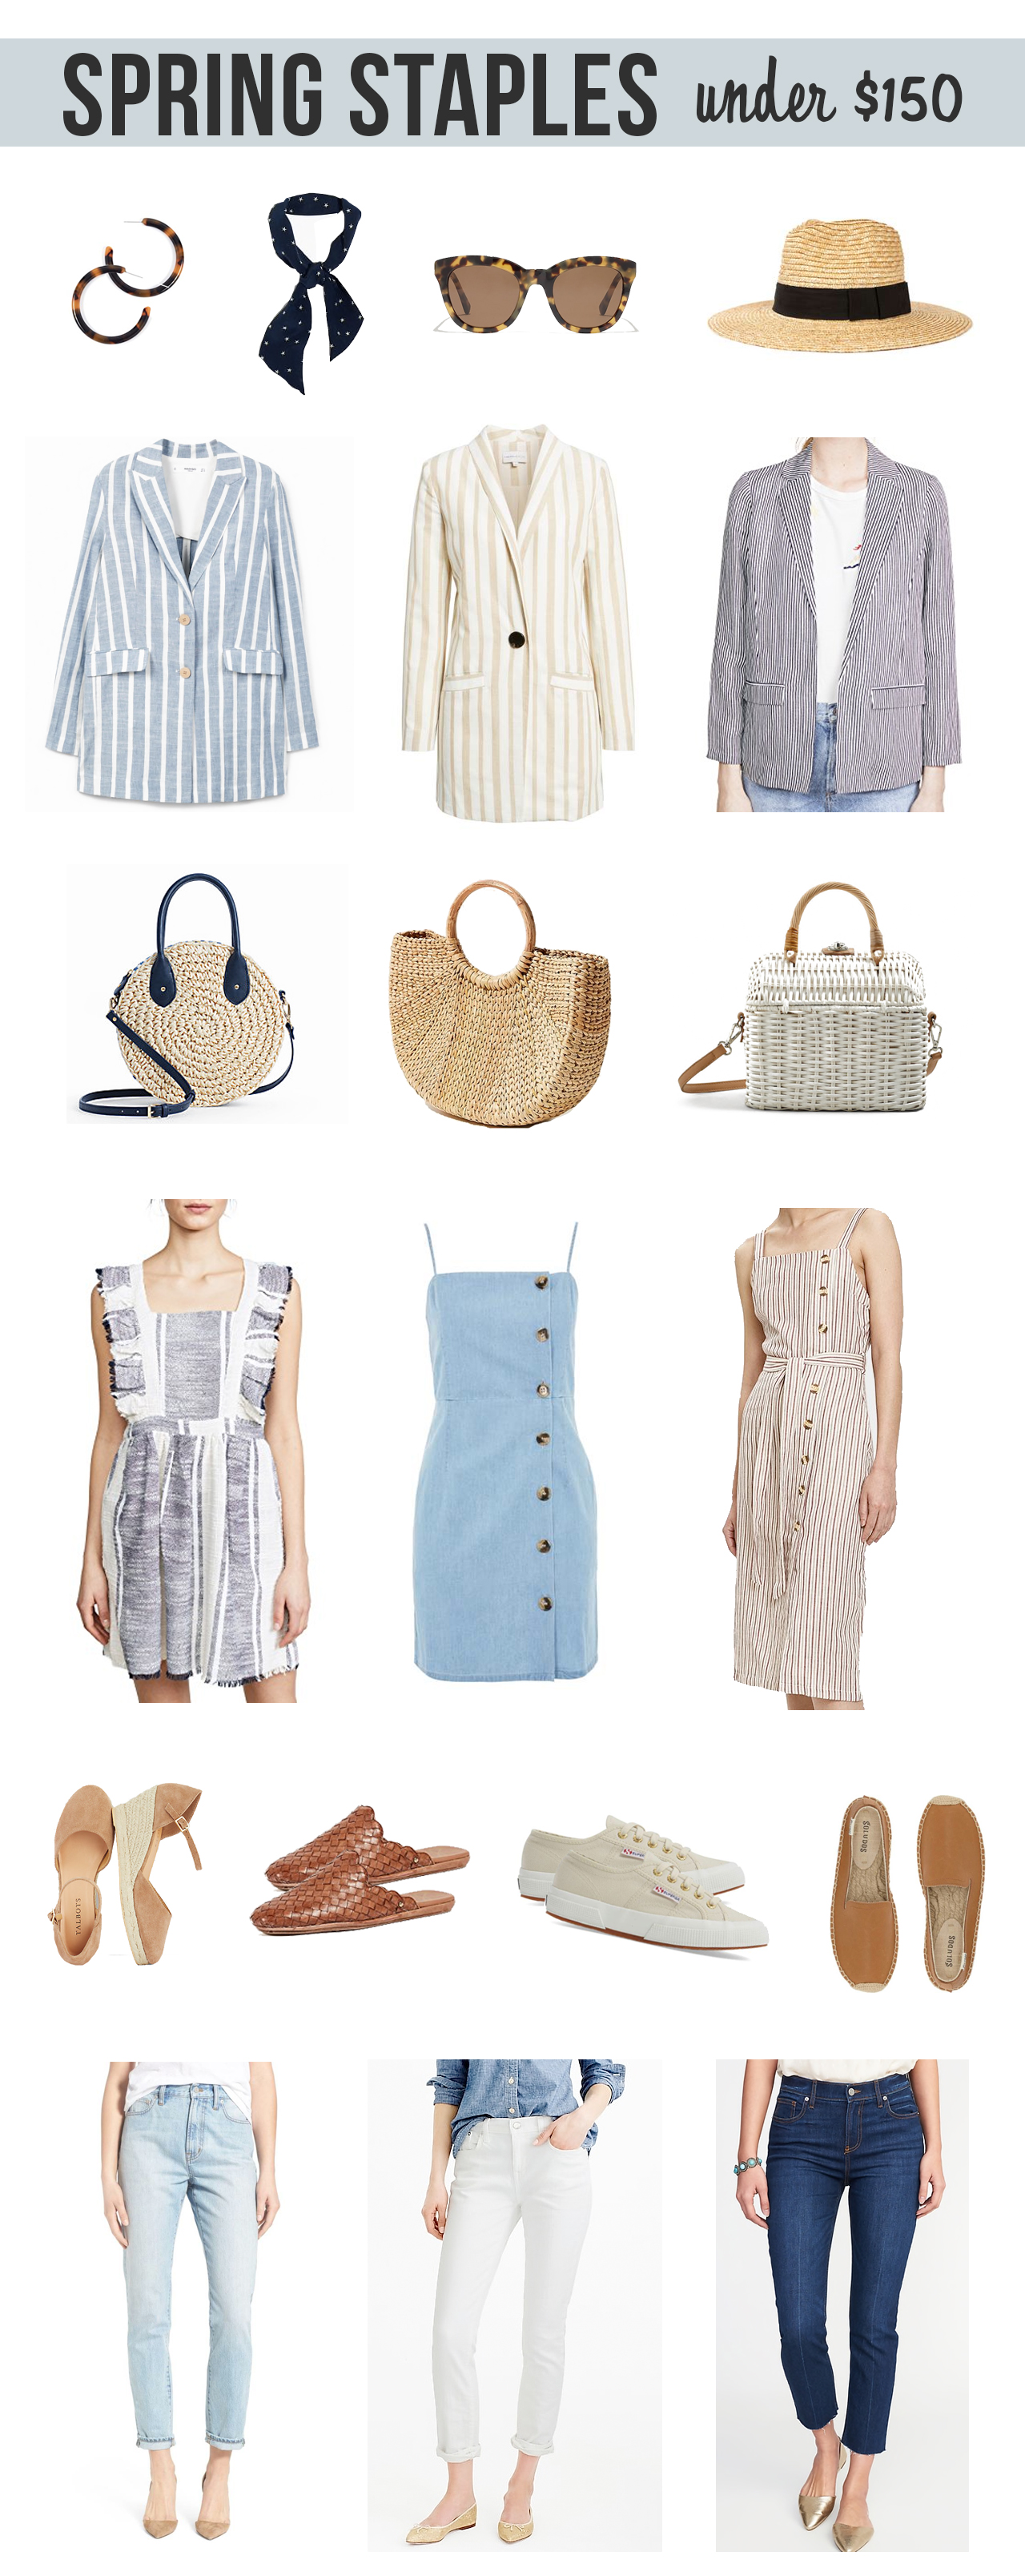 The Steele Maiden: Spring Staples Under $150